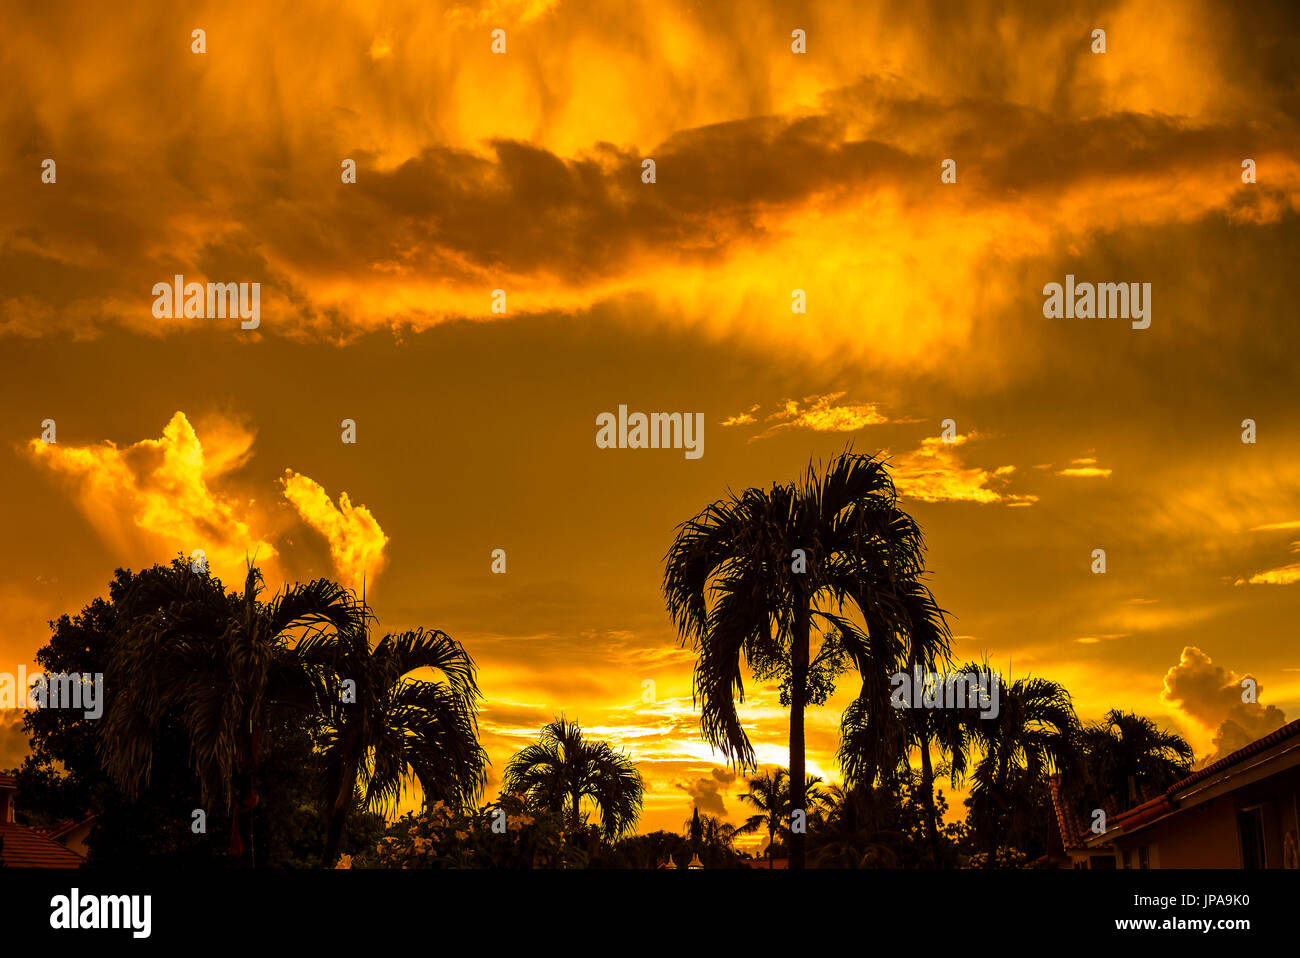 A very weird Sunrise during Erika Tropical Storm - Stock Image